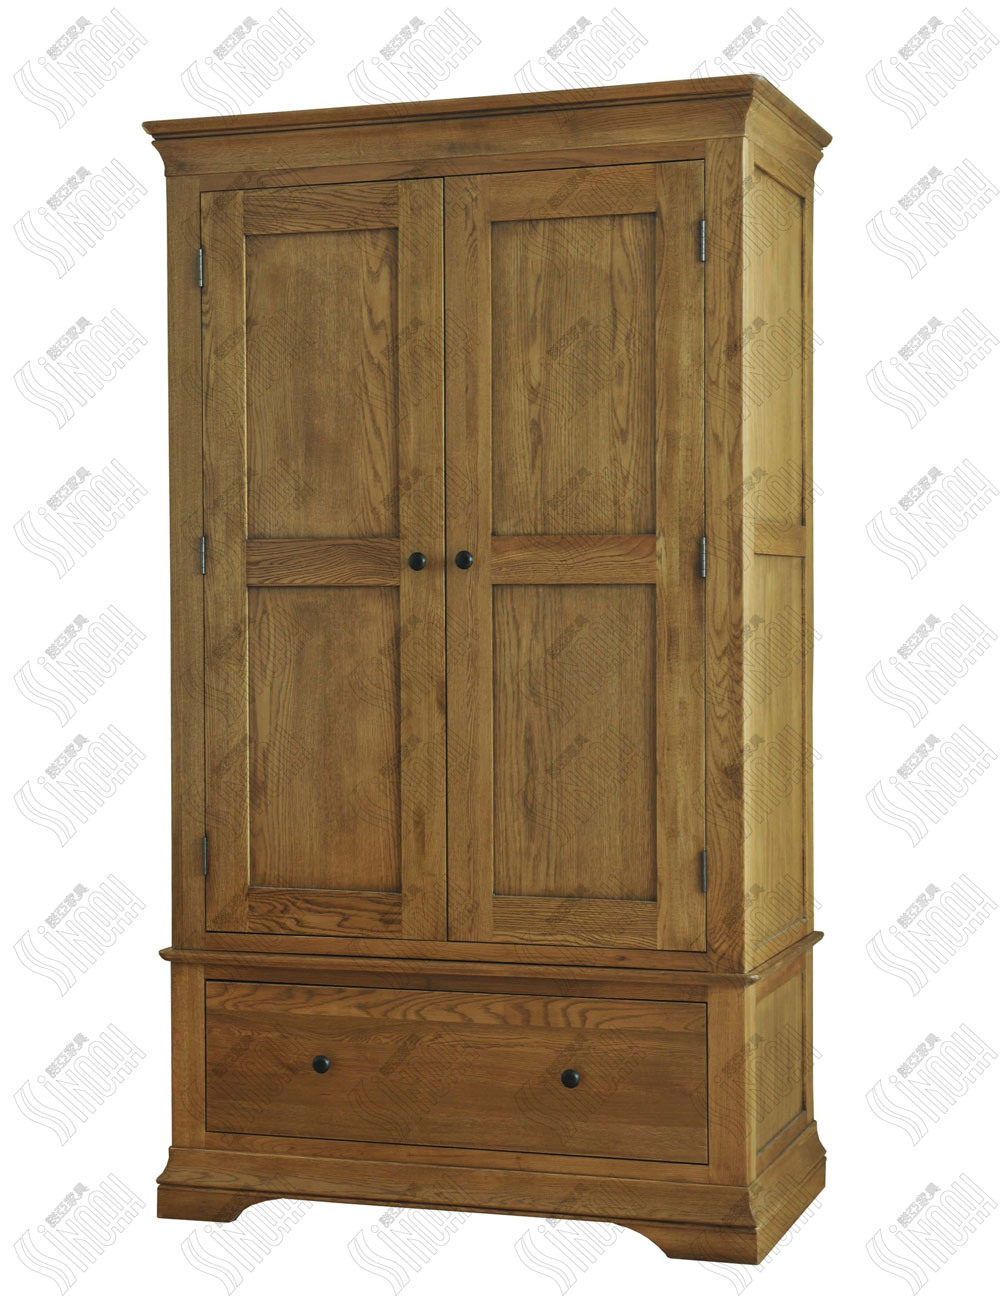 solid oak wooden gents wardrobe wooden wardrobe photos. Black Bedroom Furniture Sets. Home Design Ideas